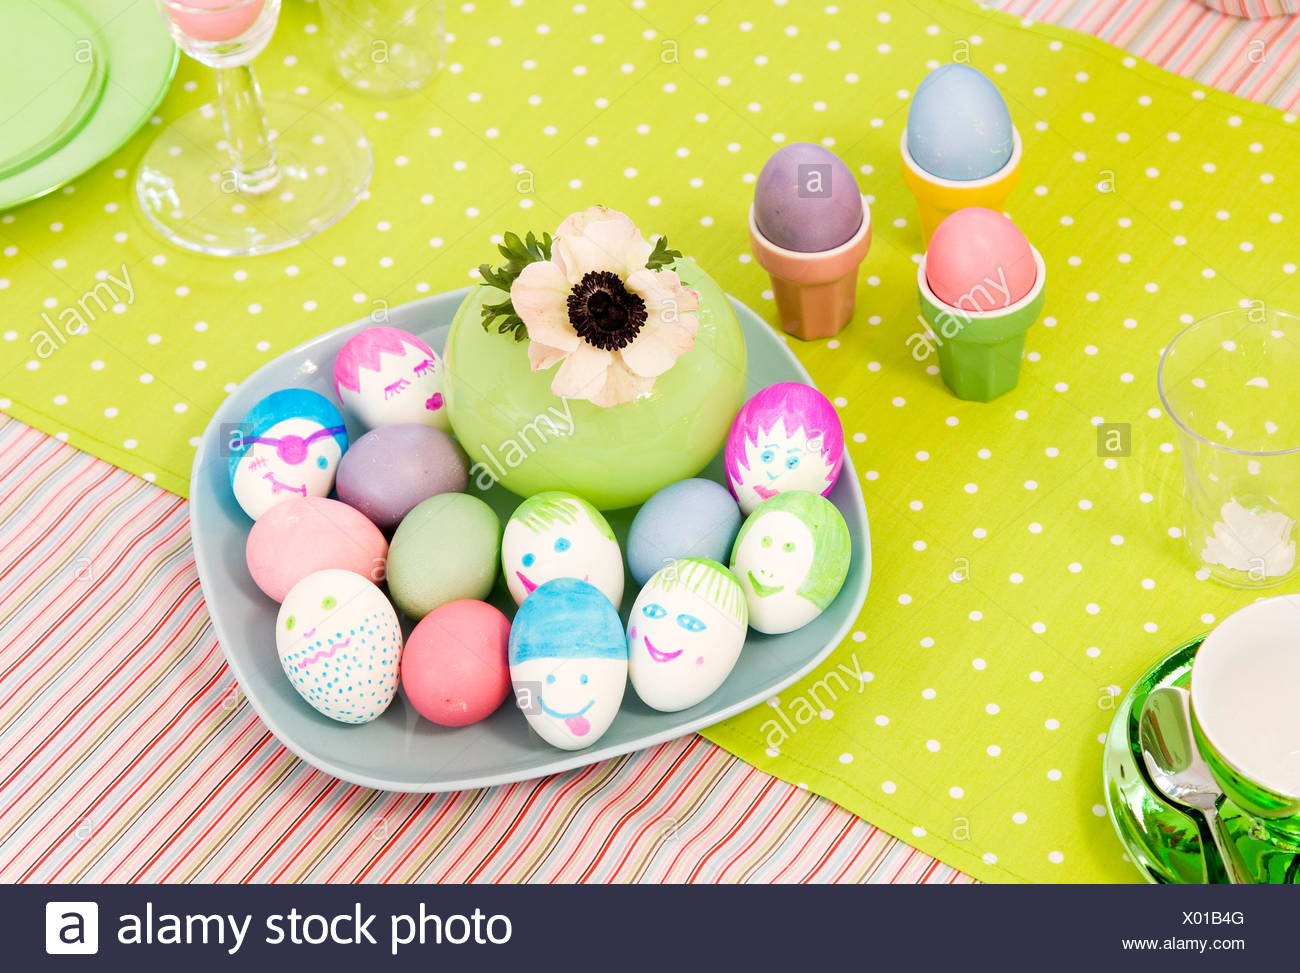 easter eggs with amusing decoration - Stock Image